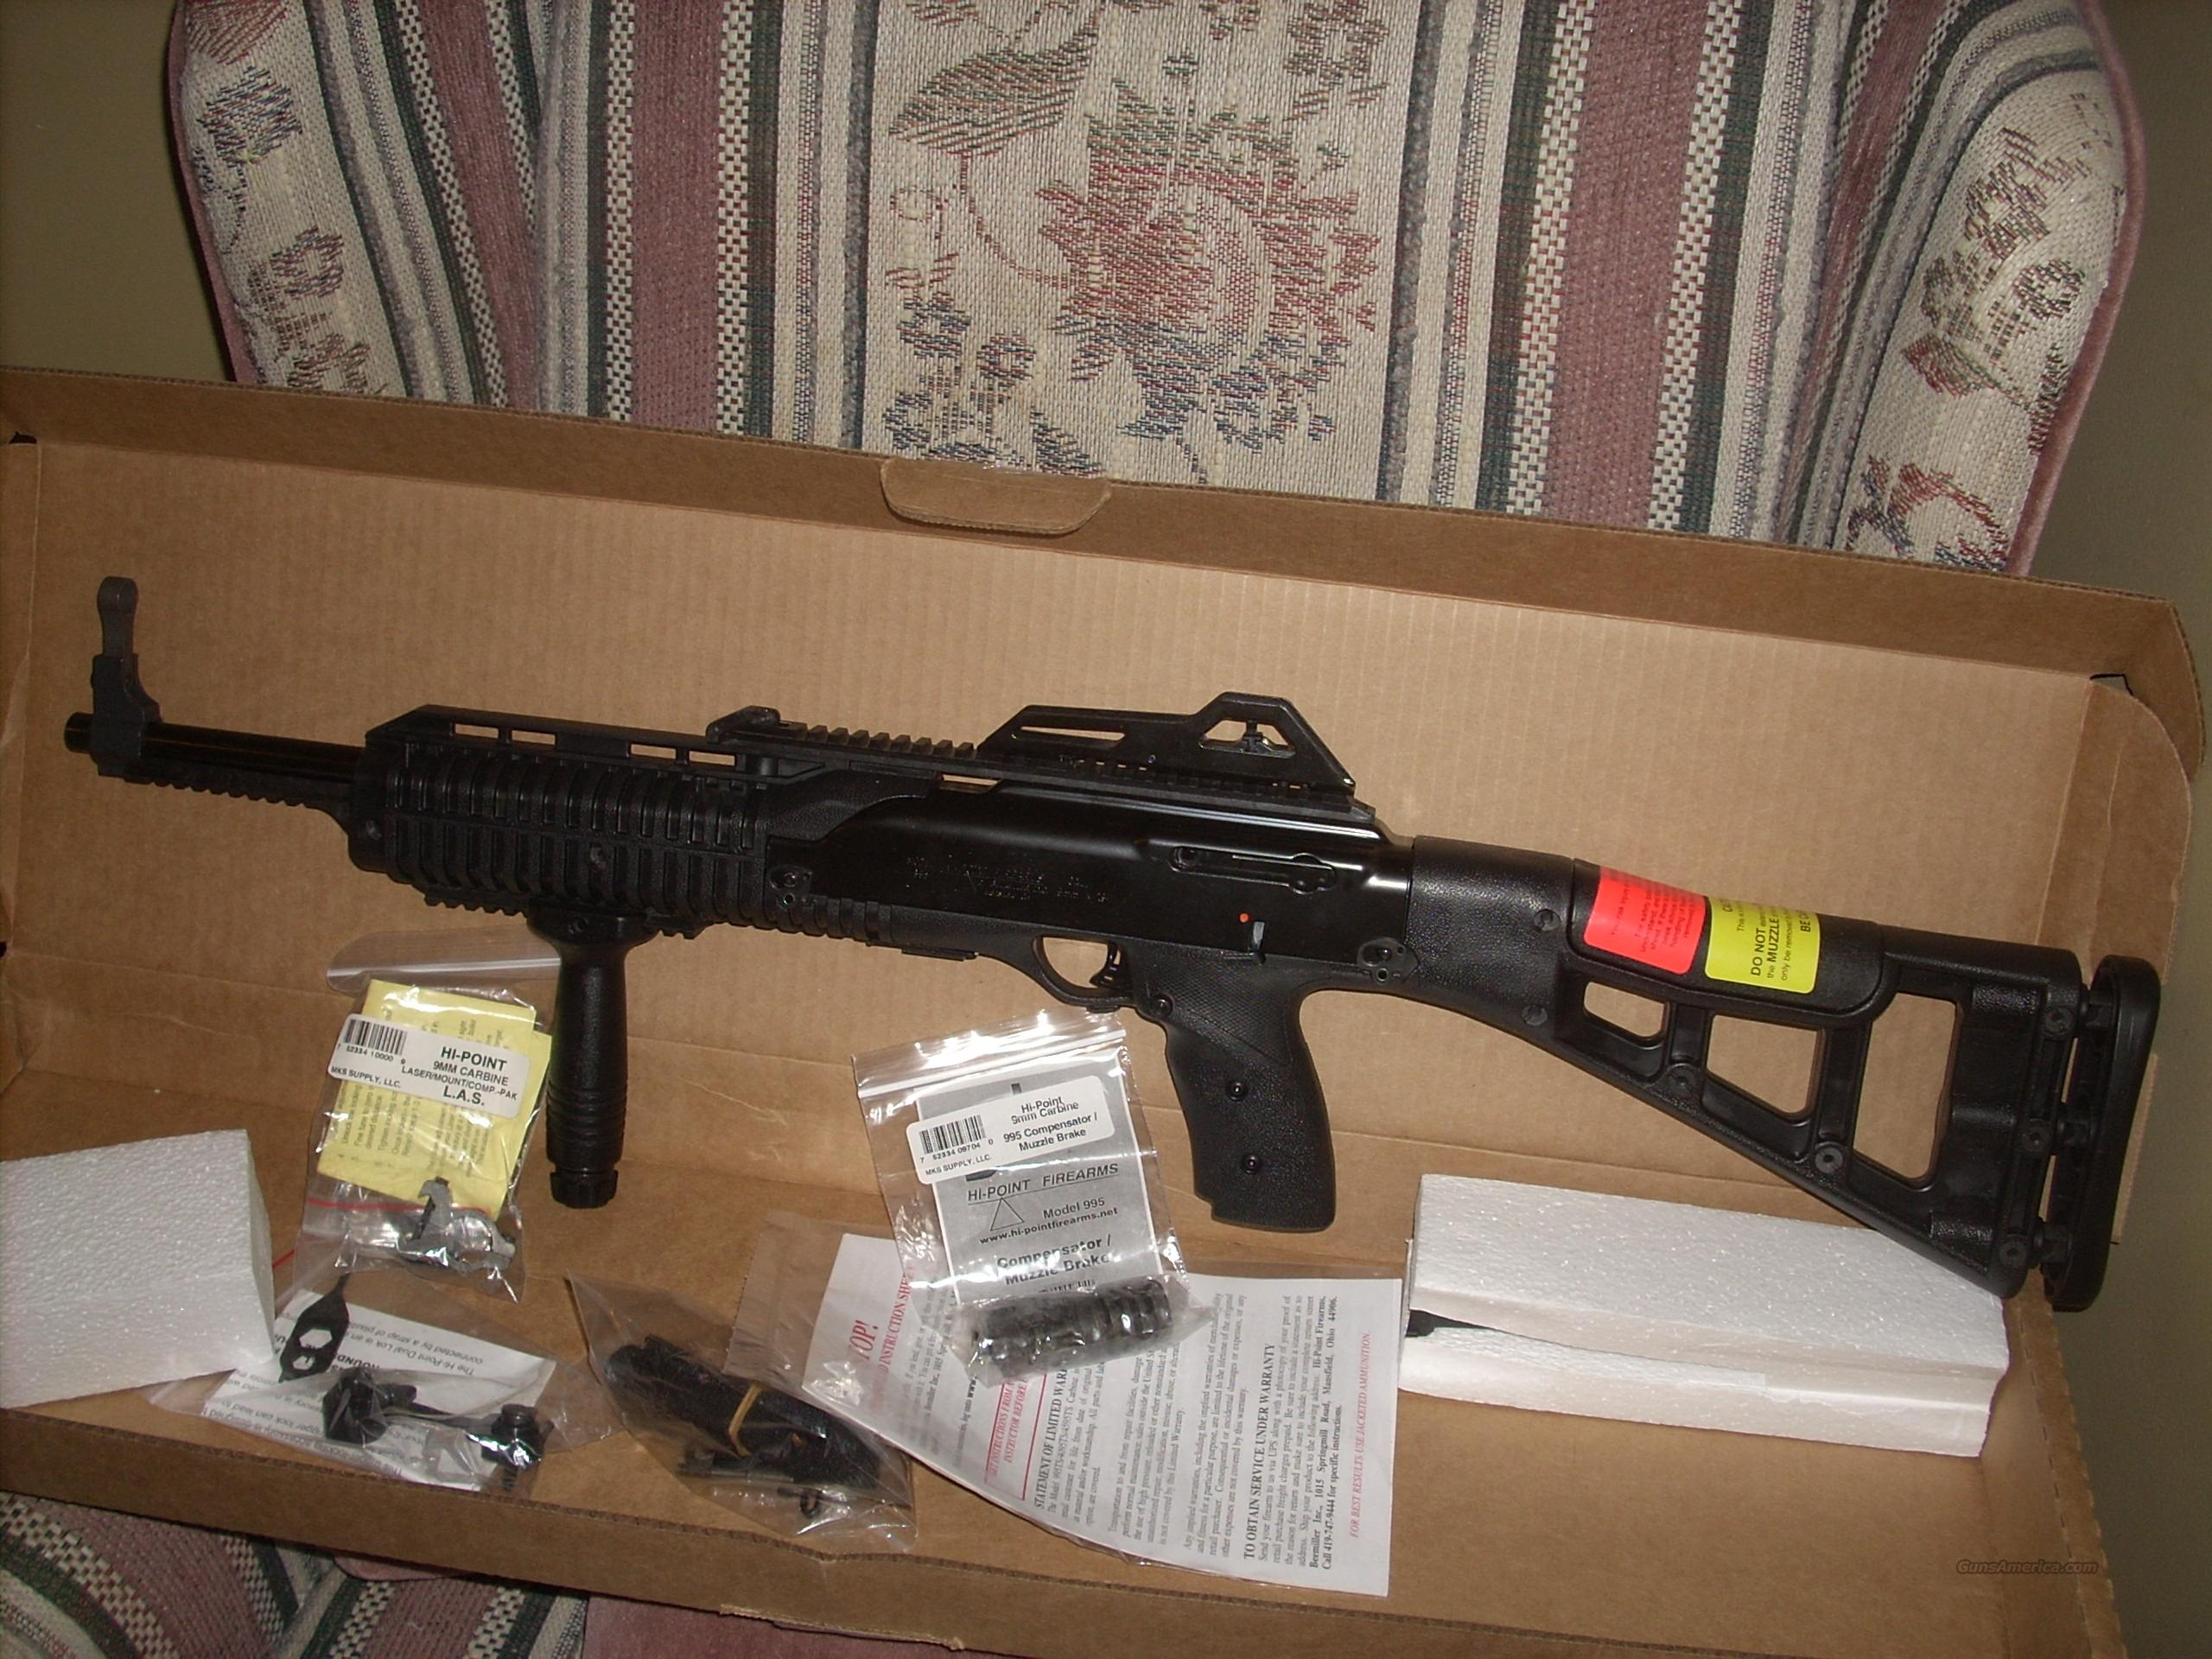 HI POINT 995TS CARBINE W/laser sight  Guns > Rifles > Hi Point Rifles